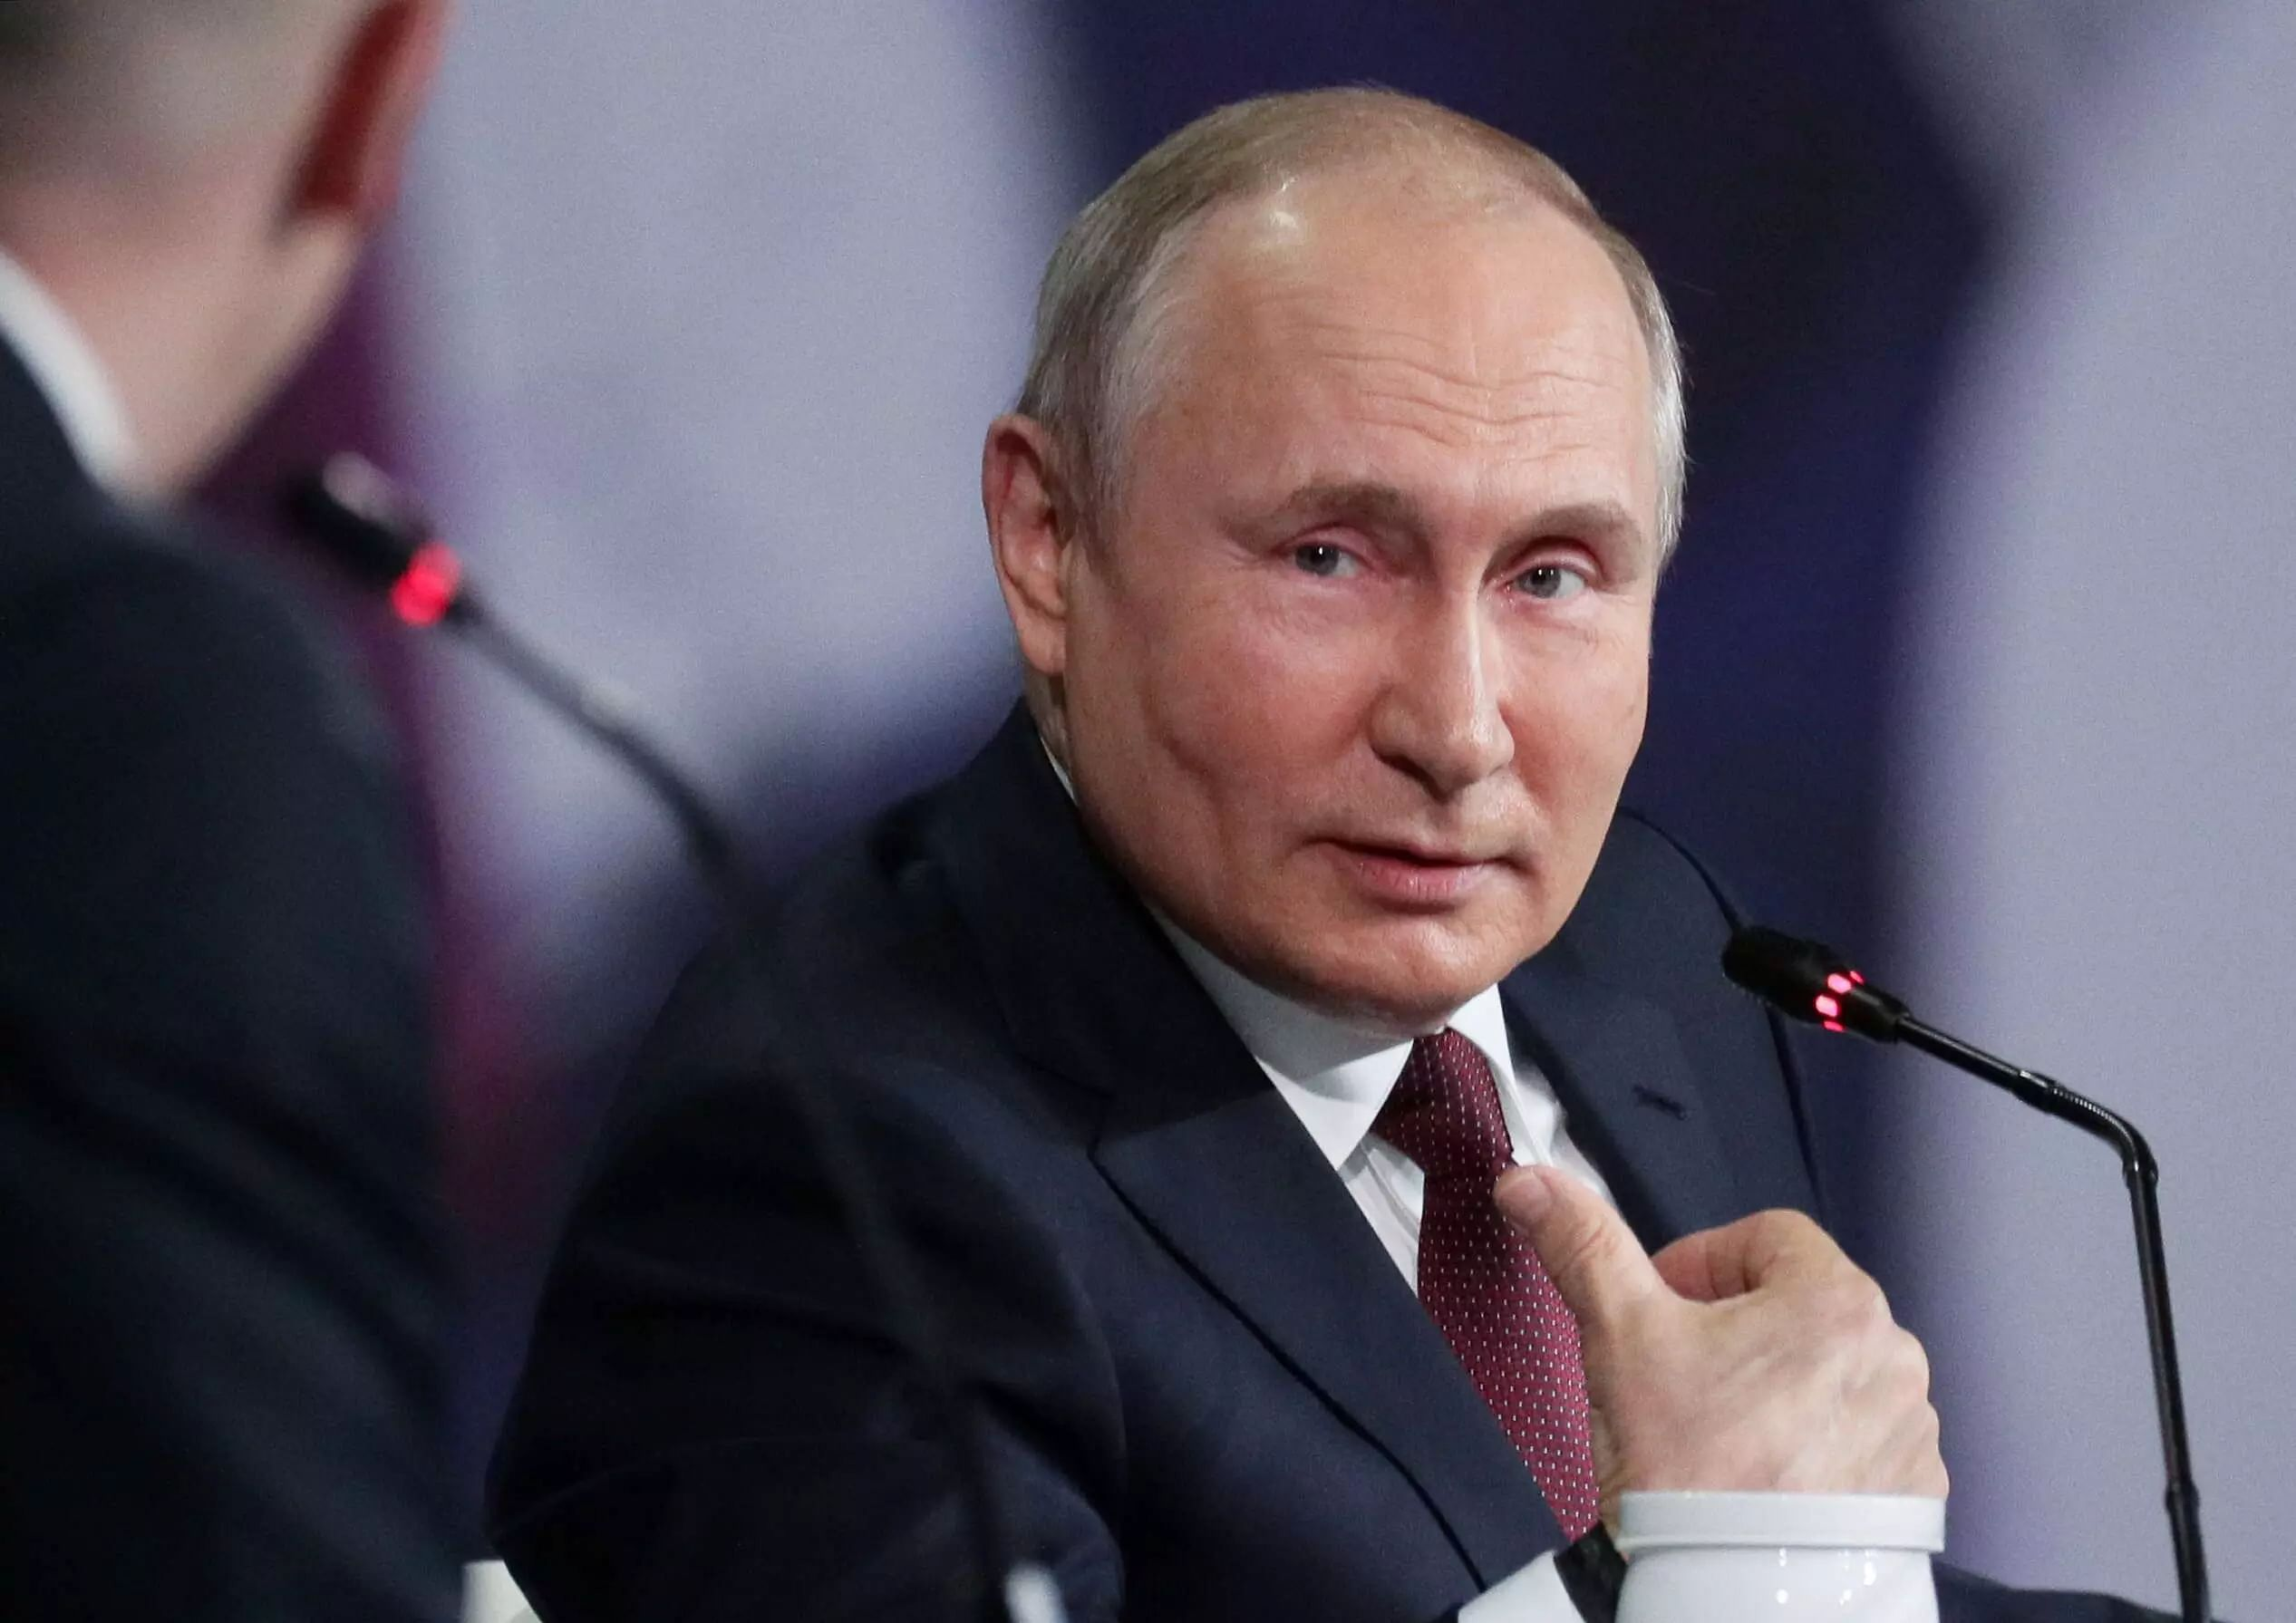 Russia-US ties at lowest point in years: Vladimir Putin